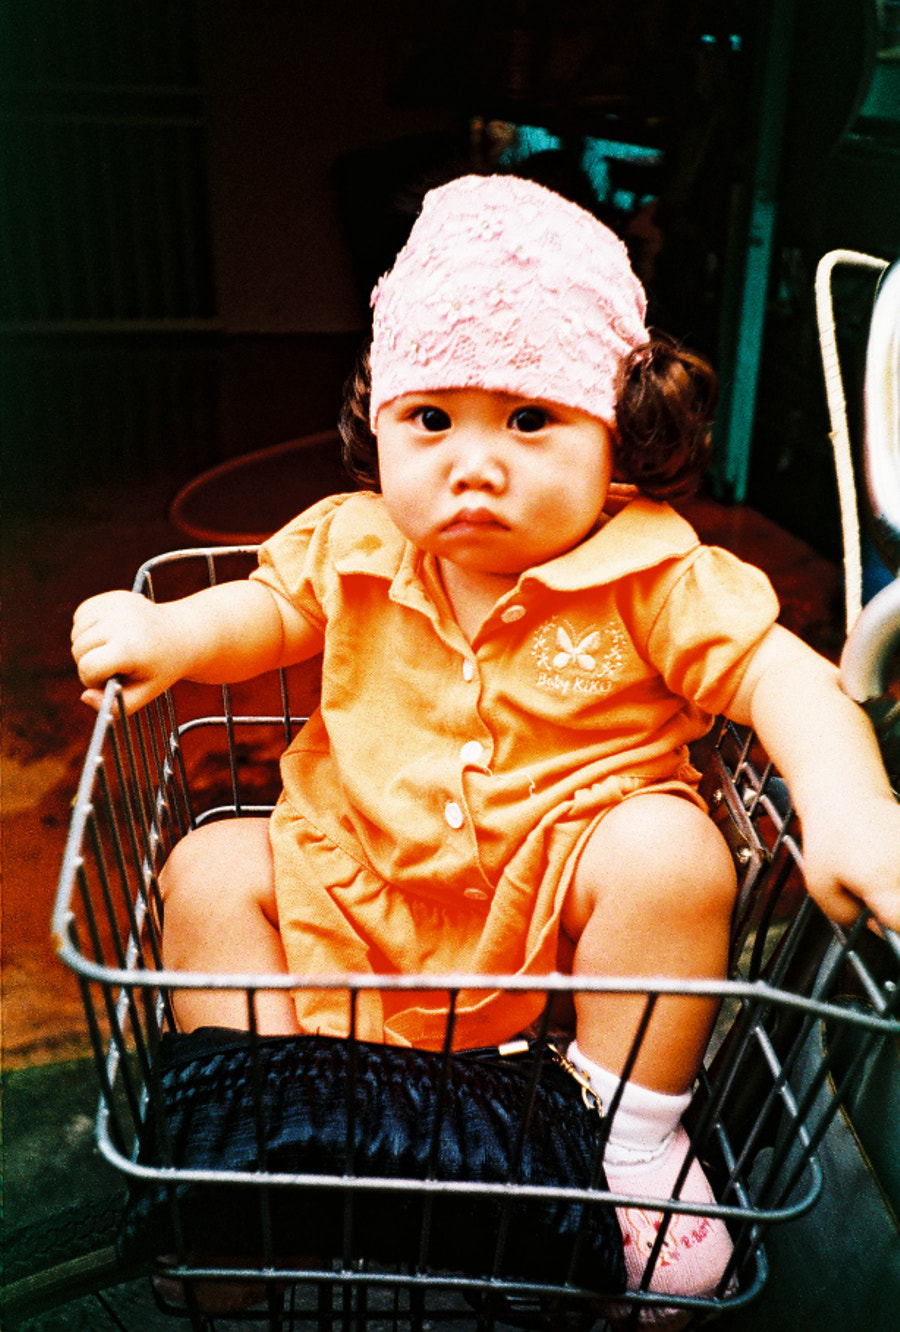 She was actually sitting in the basket which is placed in front of the bicycle. What a cute baby. At Crab Island, Selangor, Malaysia.